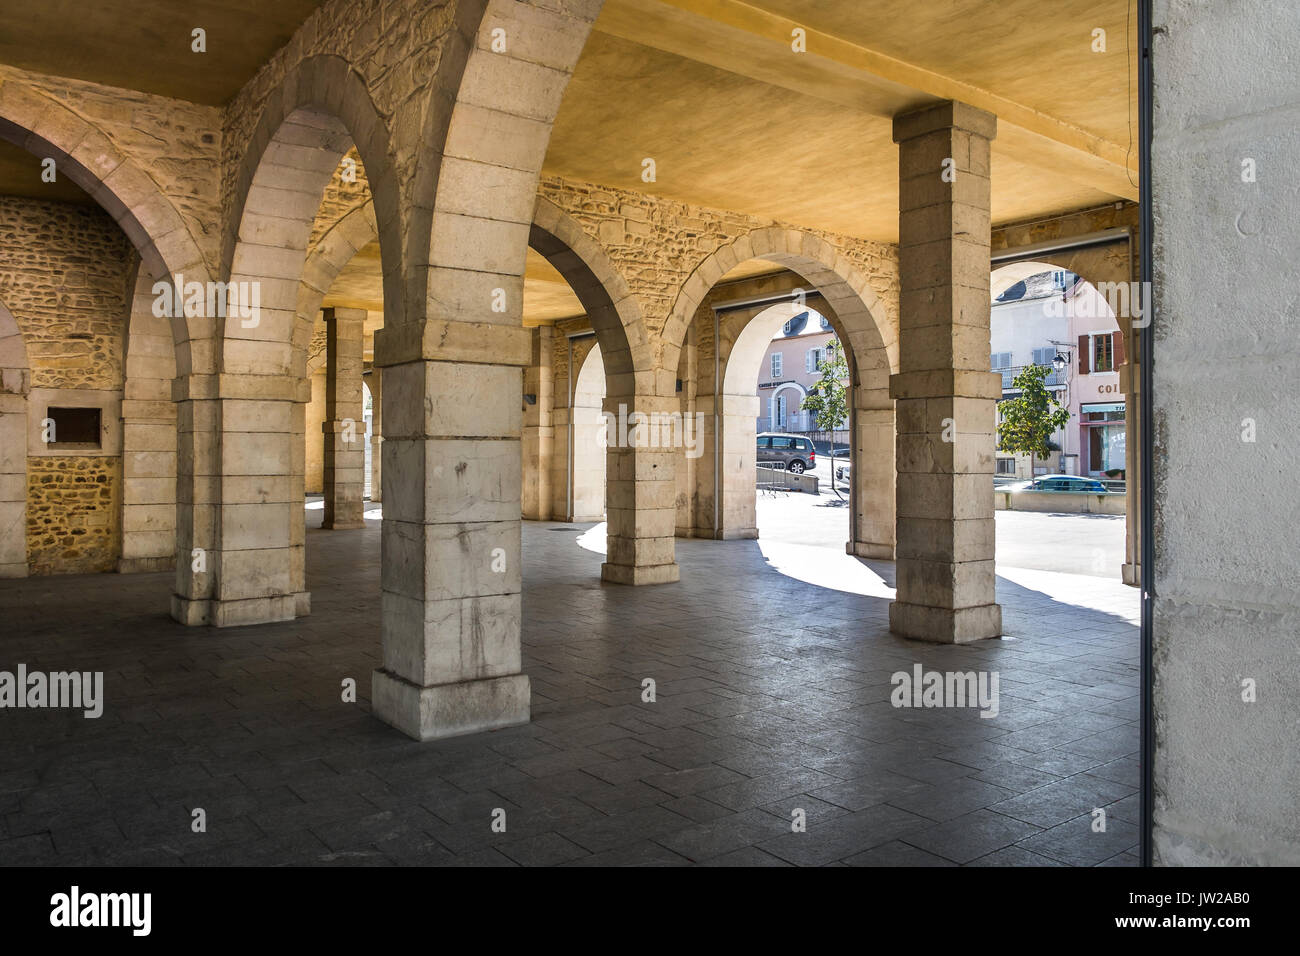 Arched market place under town hall building, Monein, Pyrénées-Atlantiques, France. - Stock Image